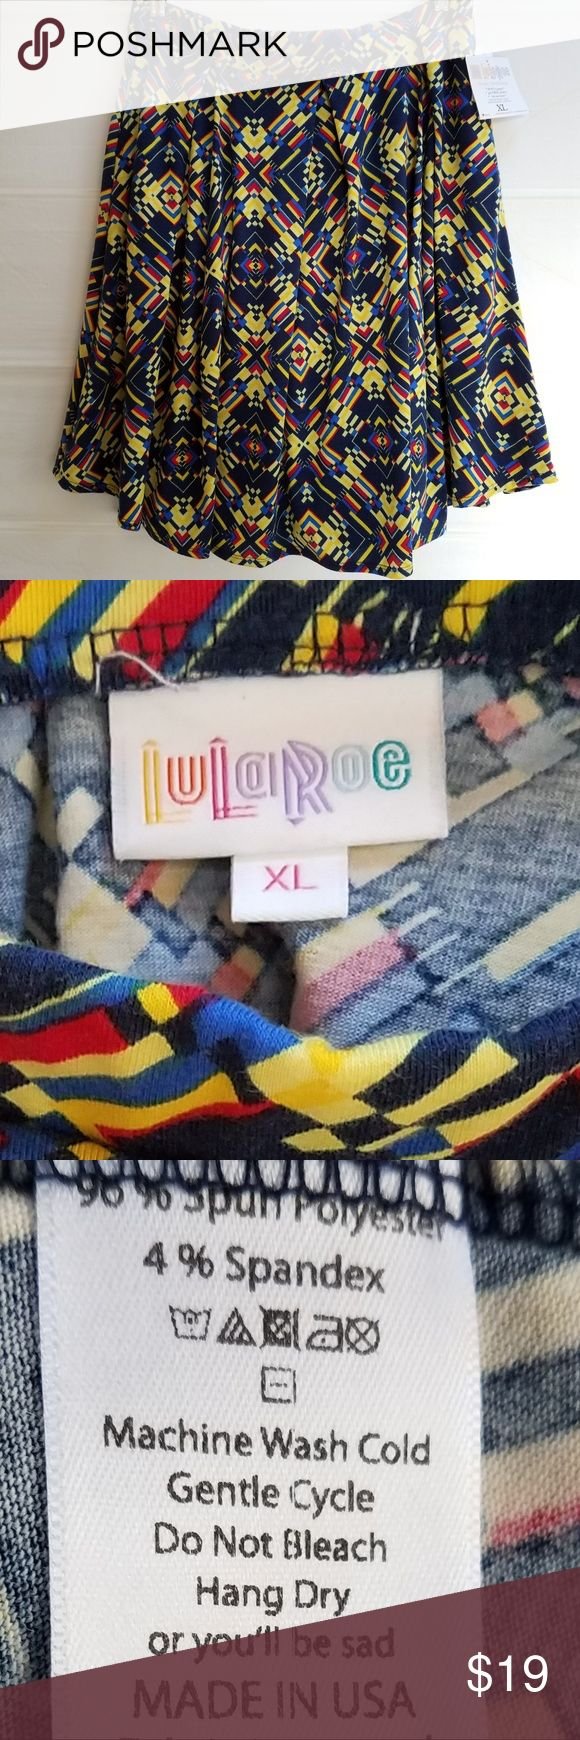 """LuLaRoe Multicolor Madison Skirt LuLaRoe Madison skirt in blue/yellow/red abstract print on navy ground. Pleated. Side-seam pockets.  New with tags. Polyester/Spandex. Measurements (flat): waist 16 1/2"""", length 23"""" LuLaRoe Skirts"""